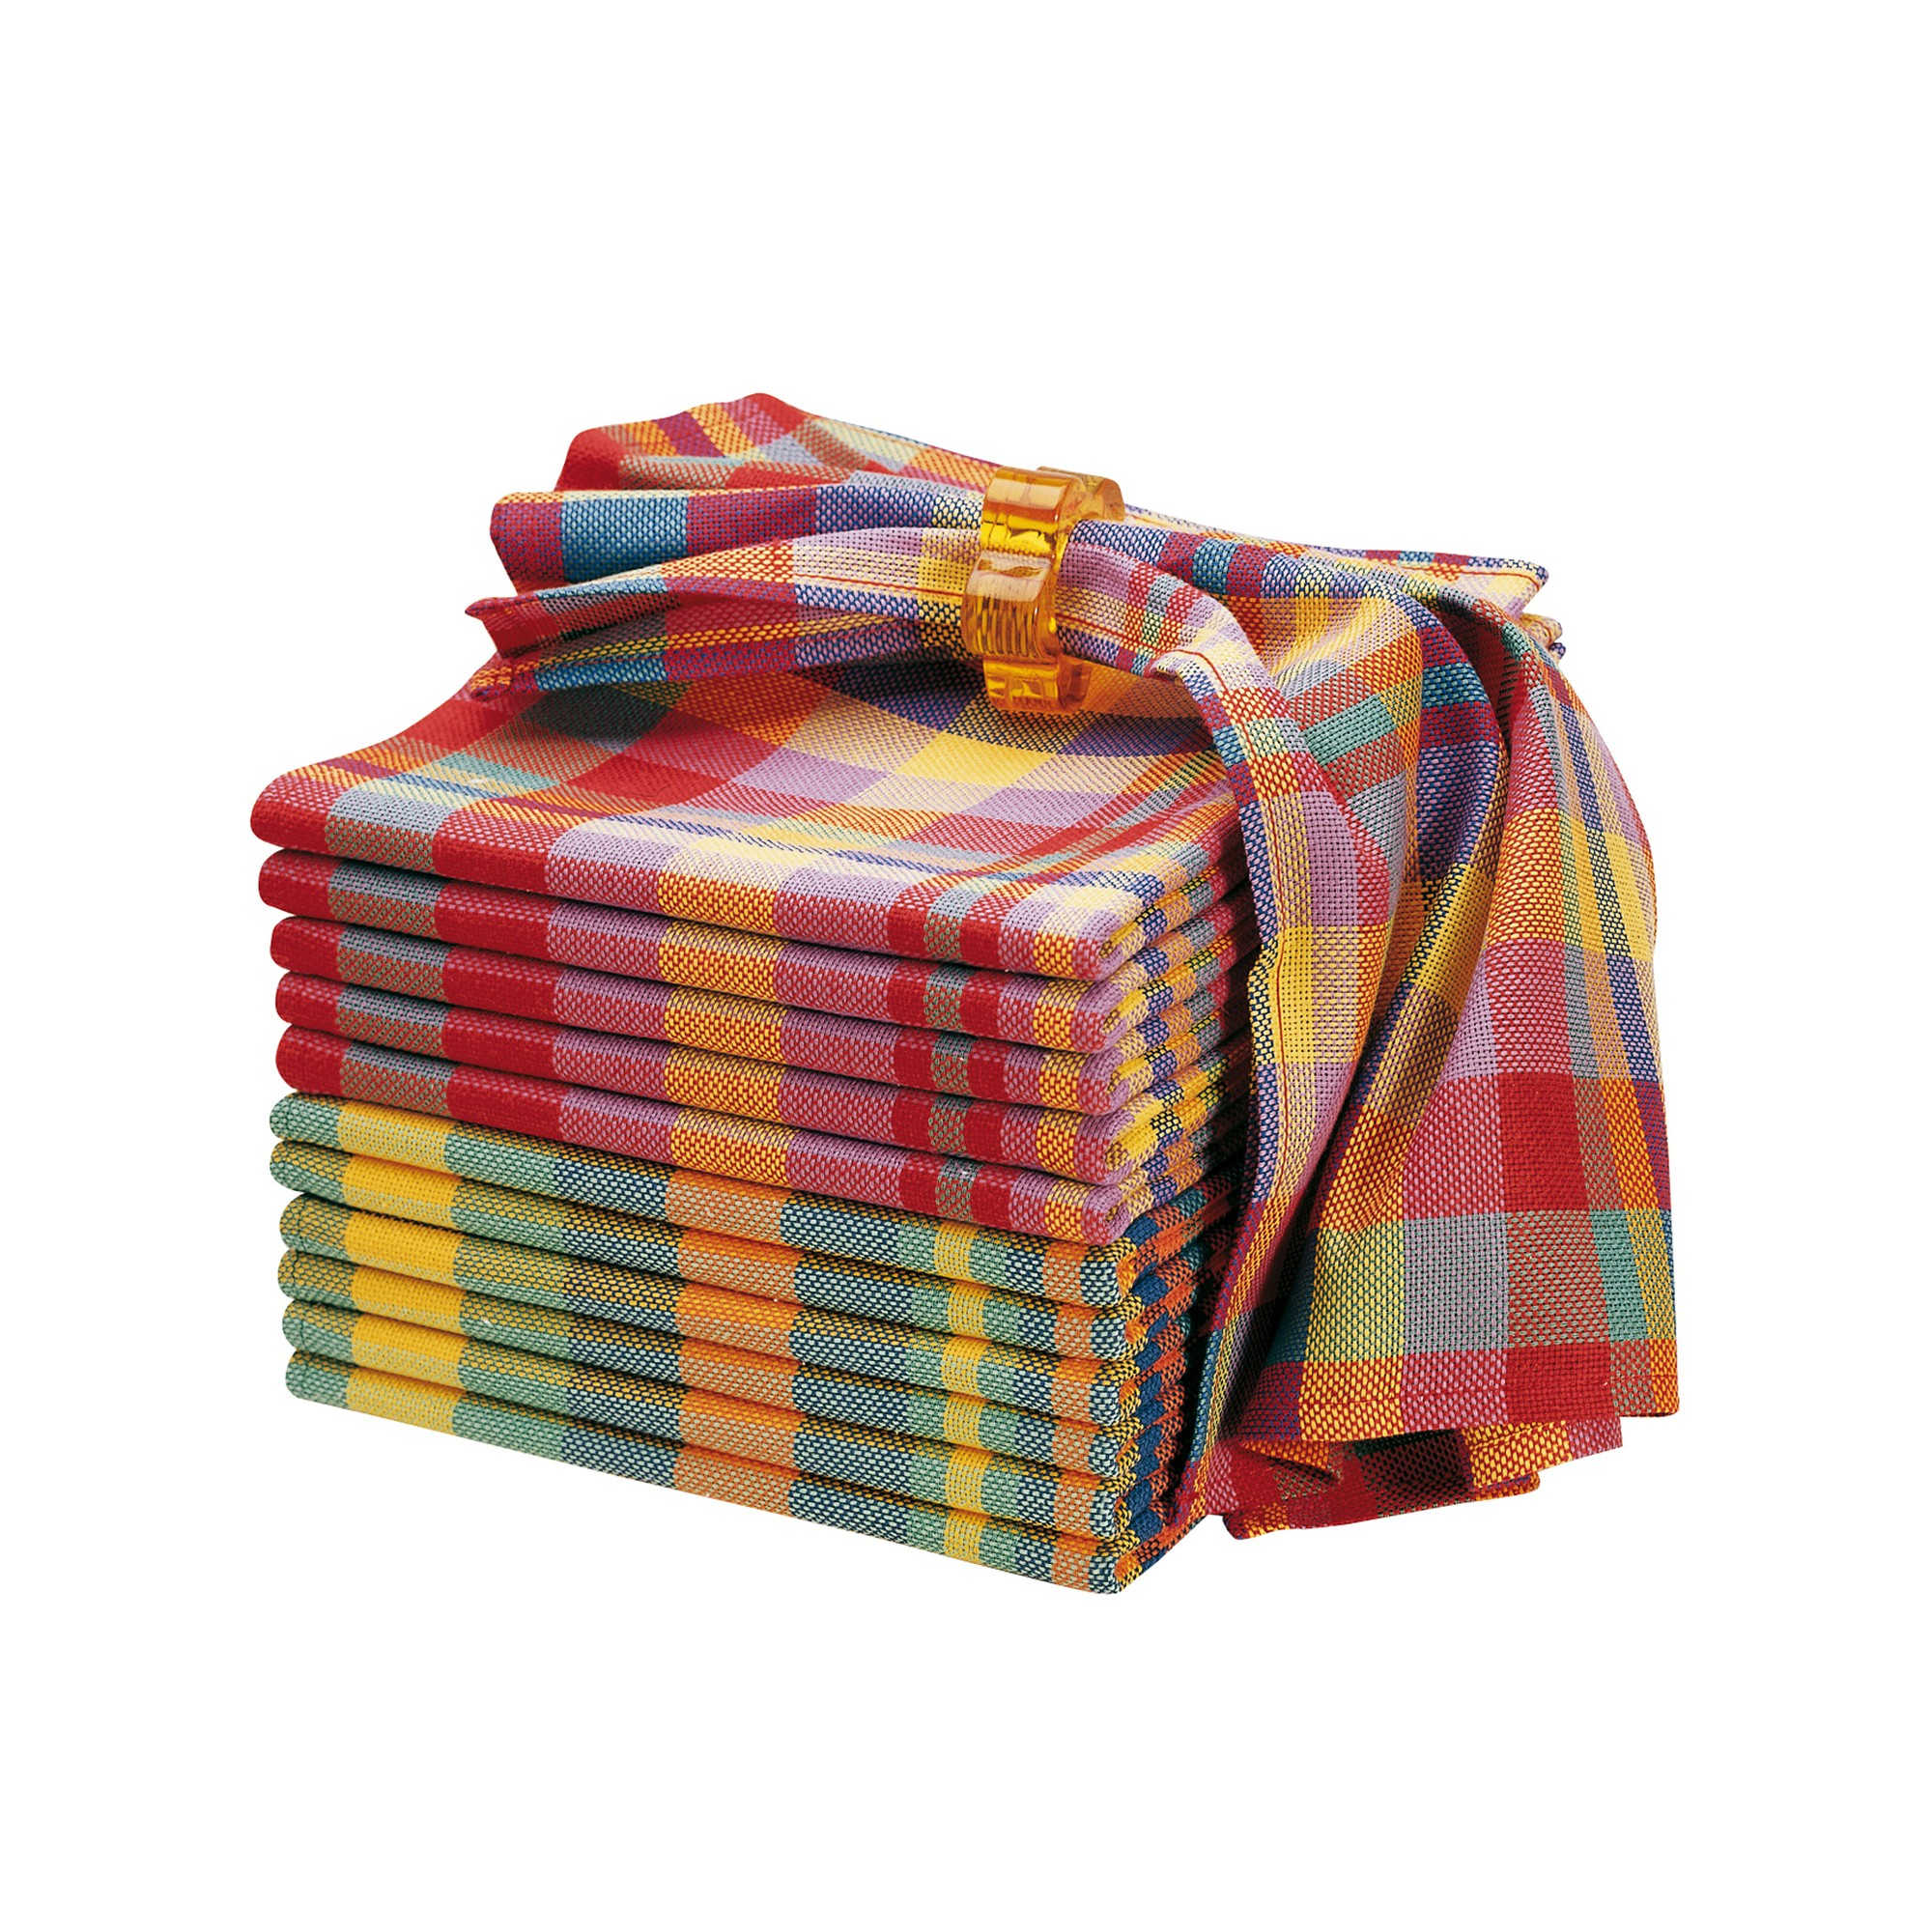 Serviette de table madras lots blancheporte - Serviette de table blanche pas cher ...